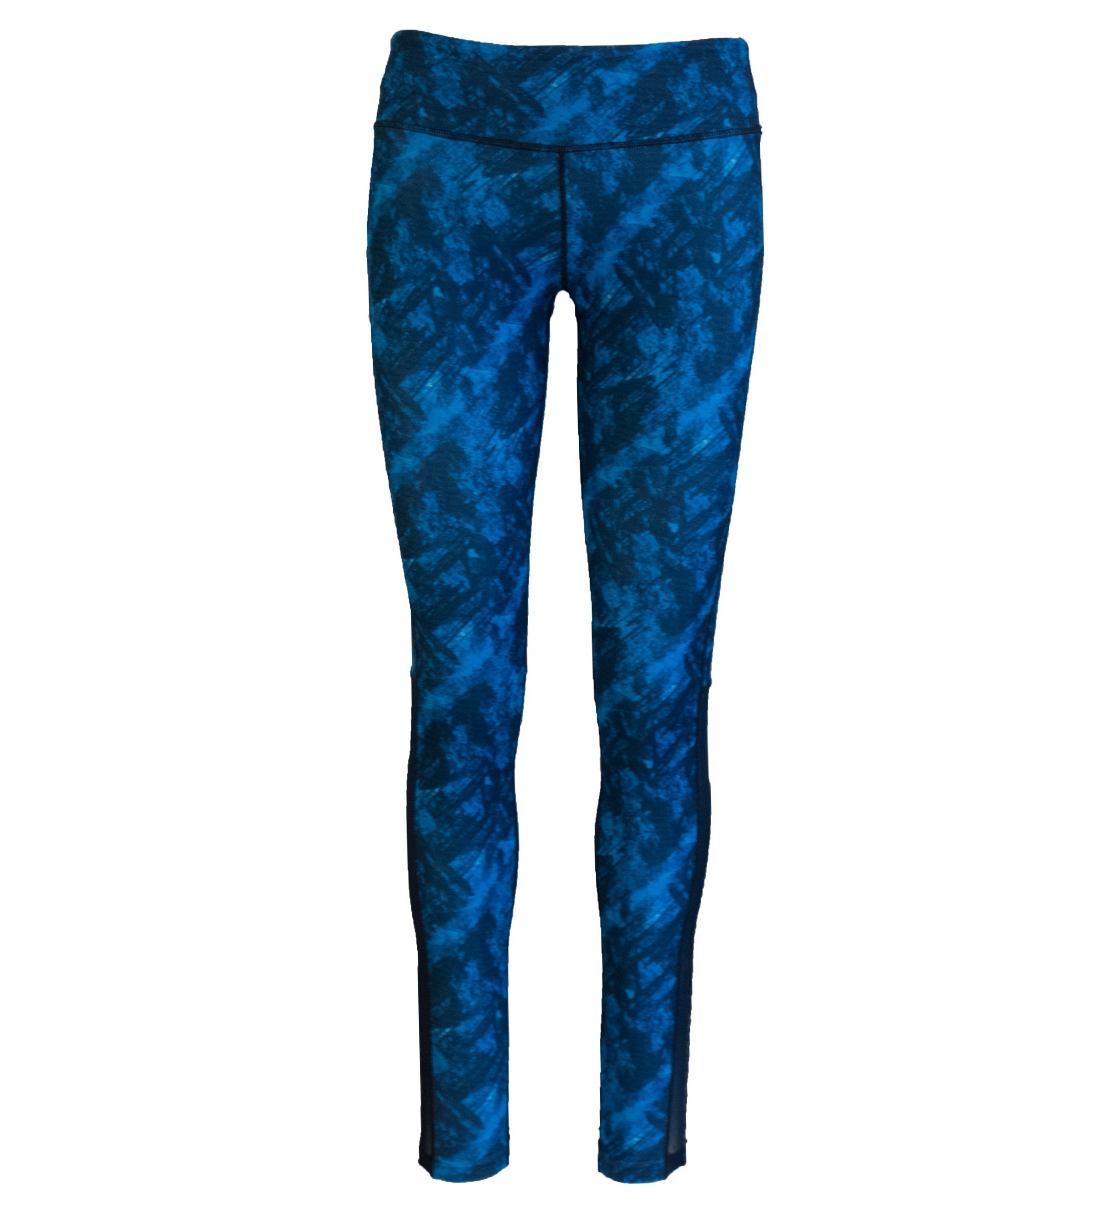 Body Action Γυναικείο Αθλητικό Κολάν Women Allover Printed Fitted Leggings 011744